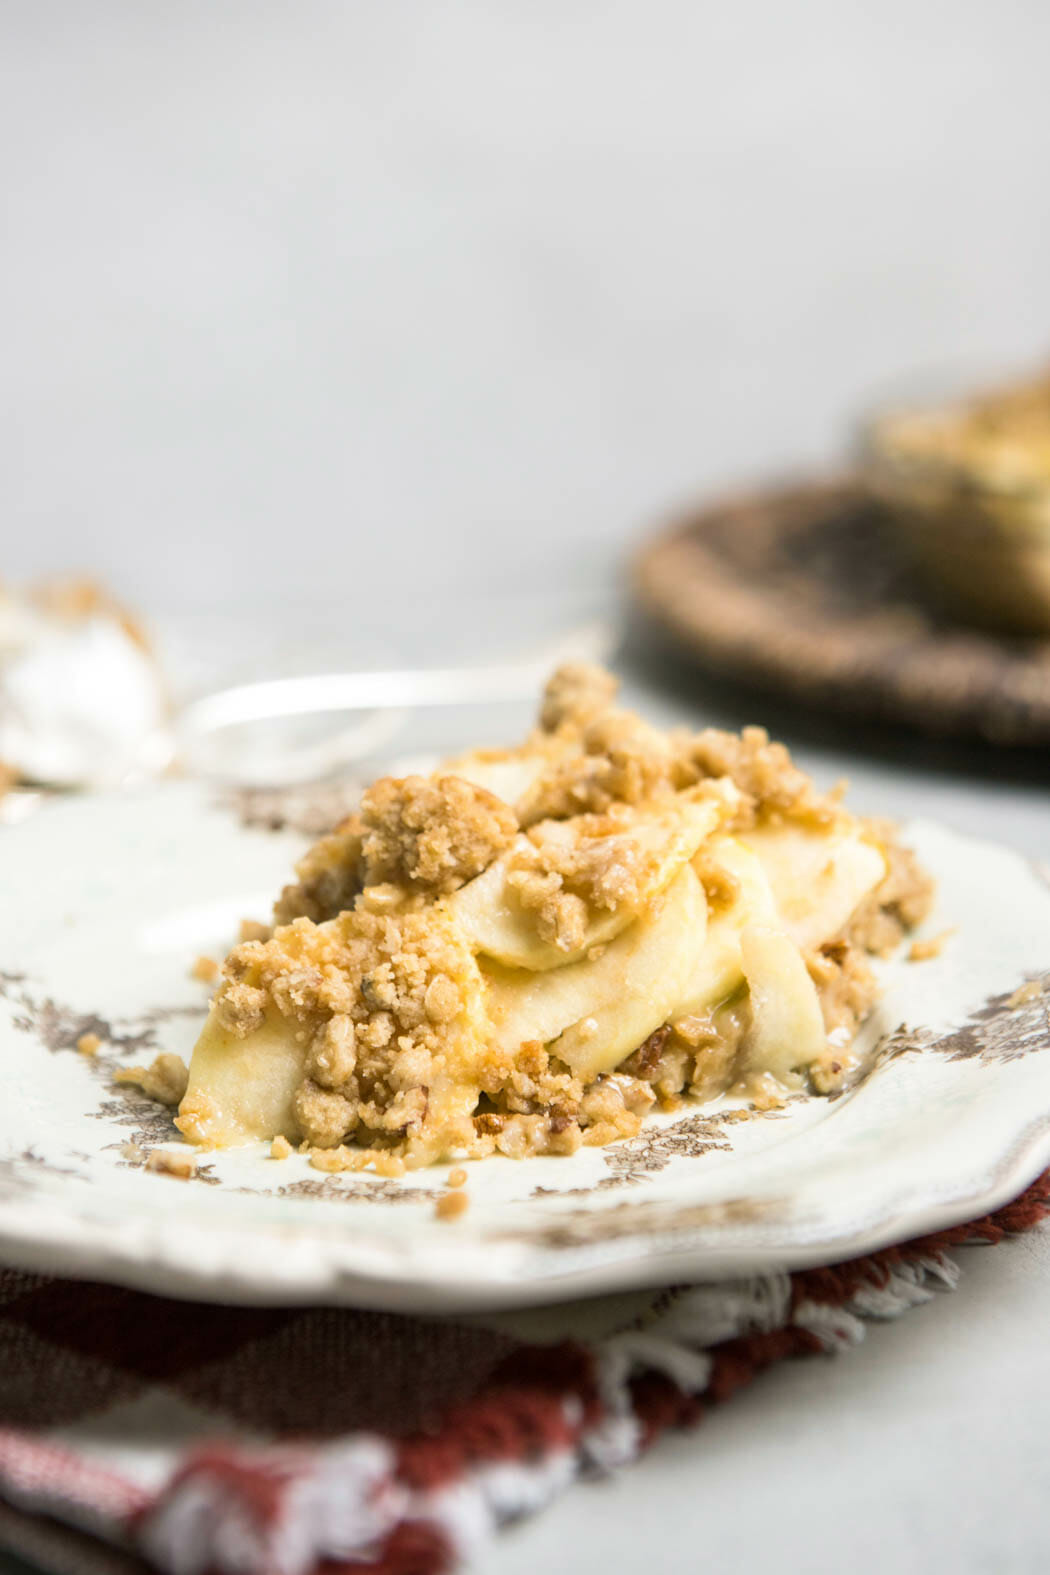 Crumb Topped Apple Pie from Our Best Bites